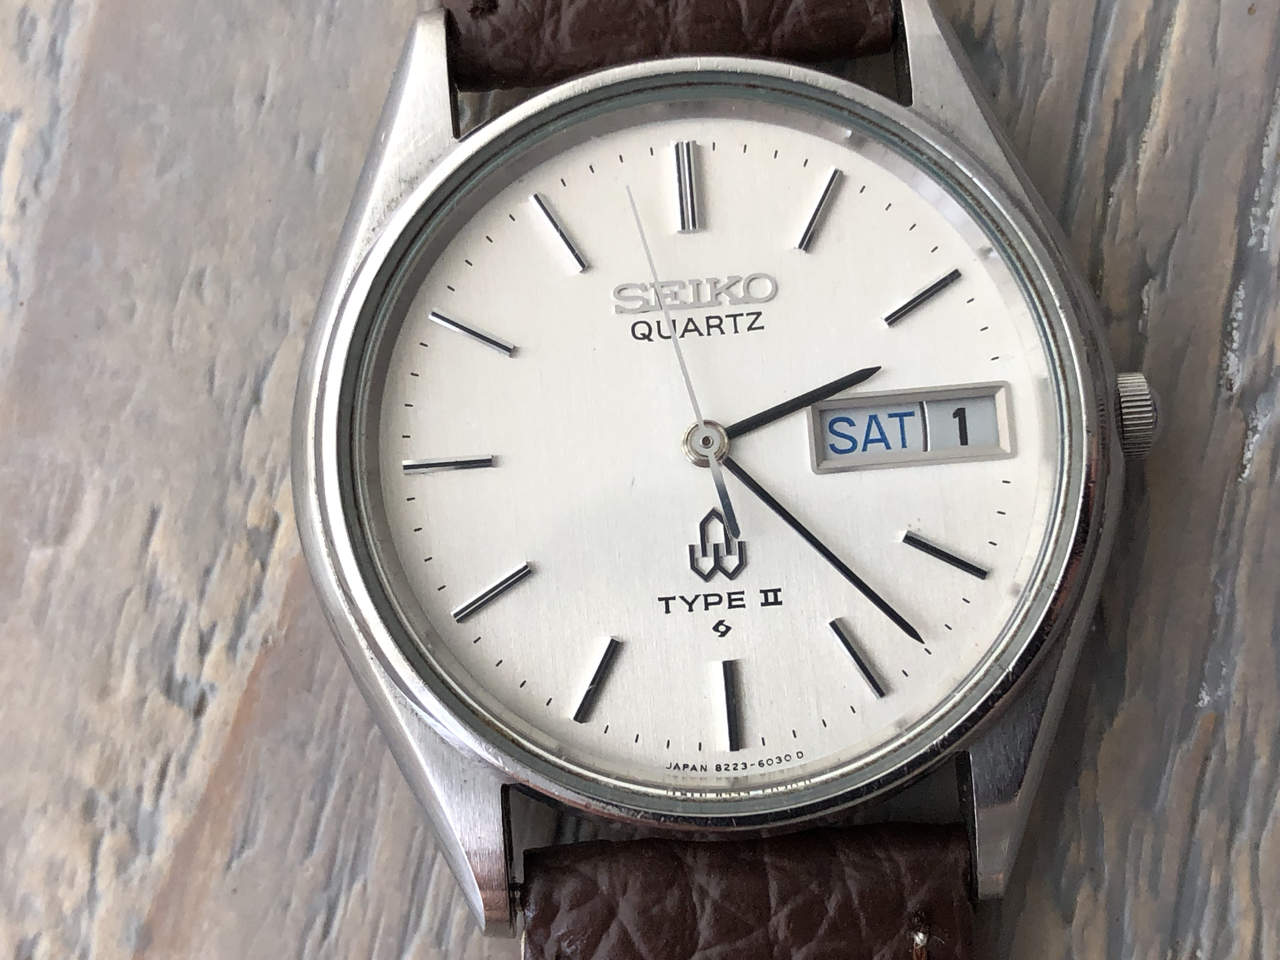 Seiko Quartz Type II 8223-6030 (Sold)